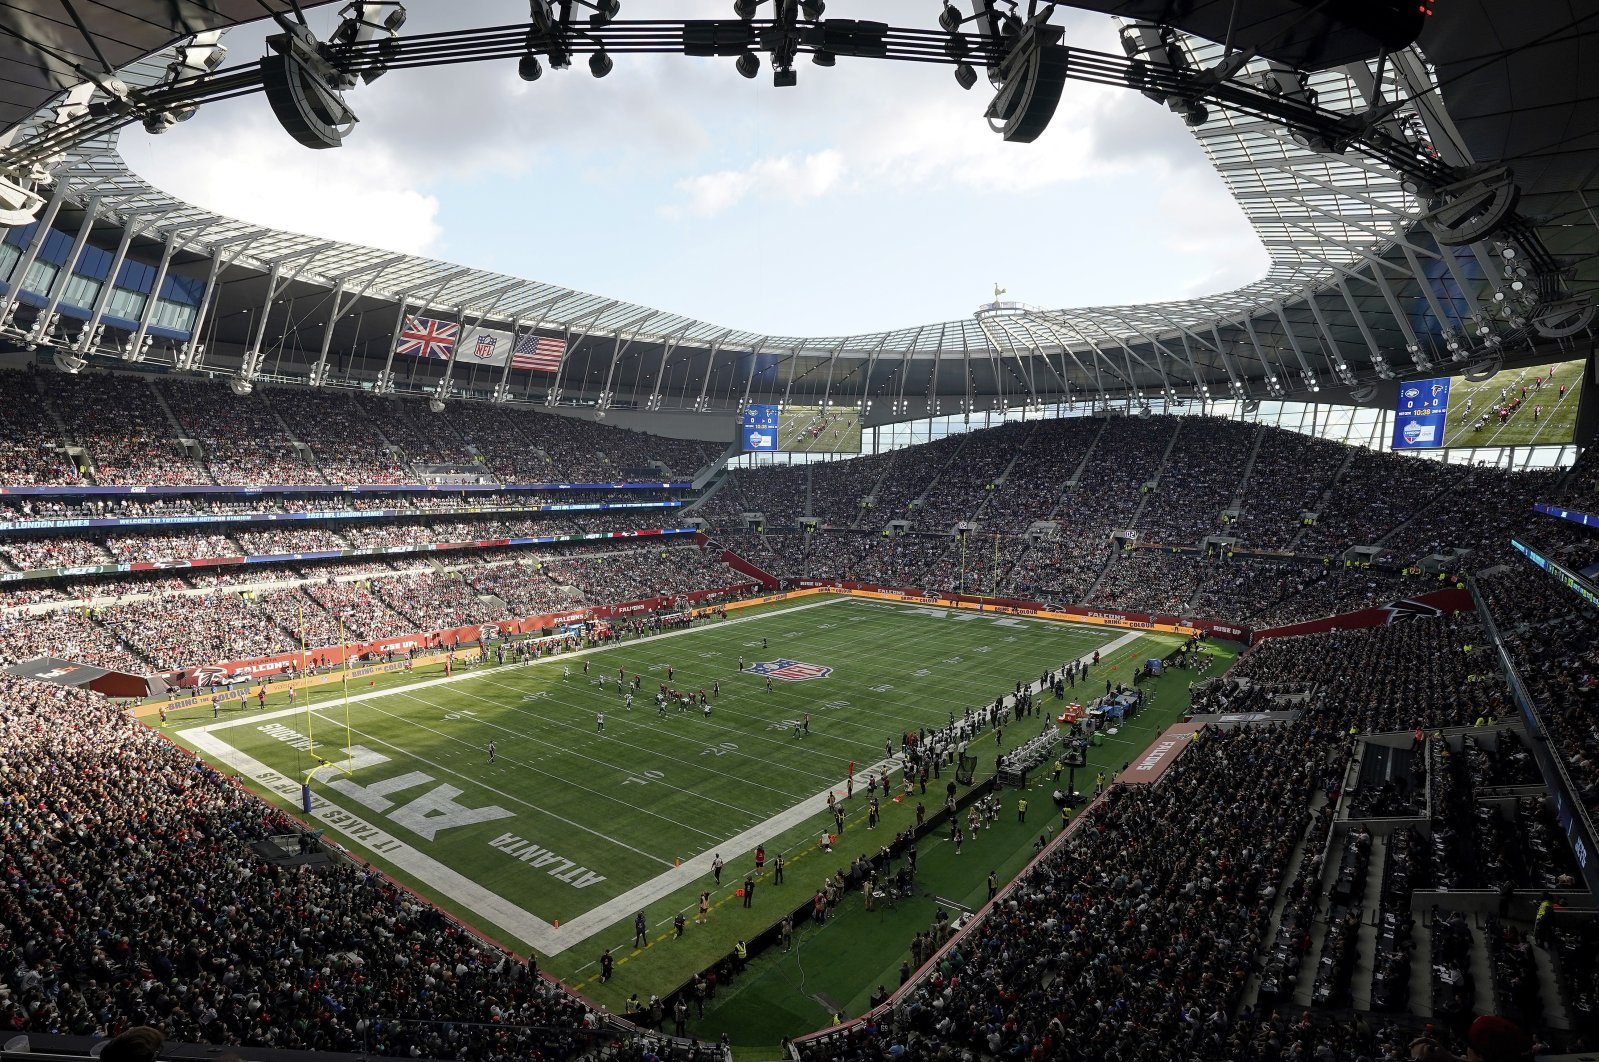 The New York Jets take on the Atlanta Falcons during an NFL football game at Tottenham Hotspur Stadium in London, Britain, Oct. 10, 2021. (AP Photo)